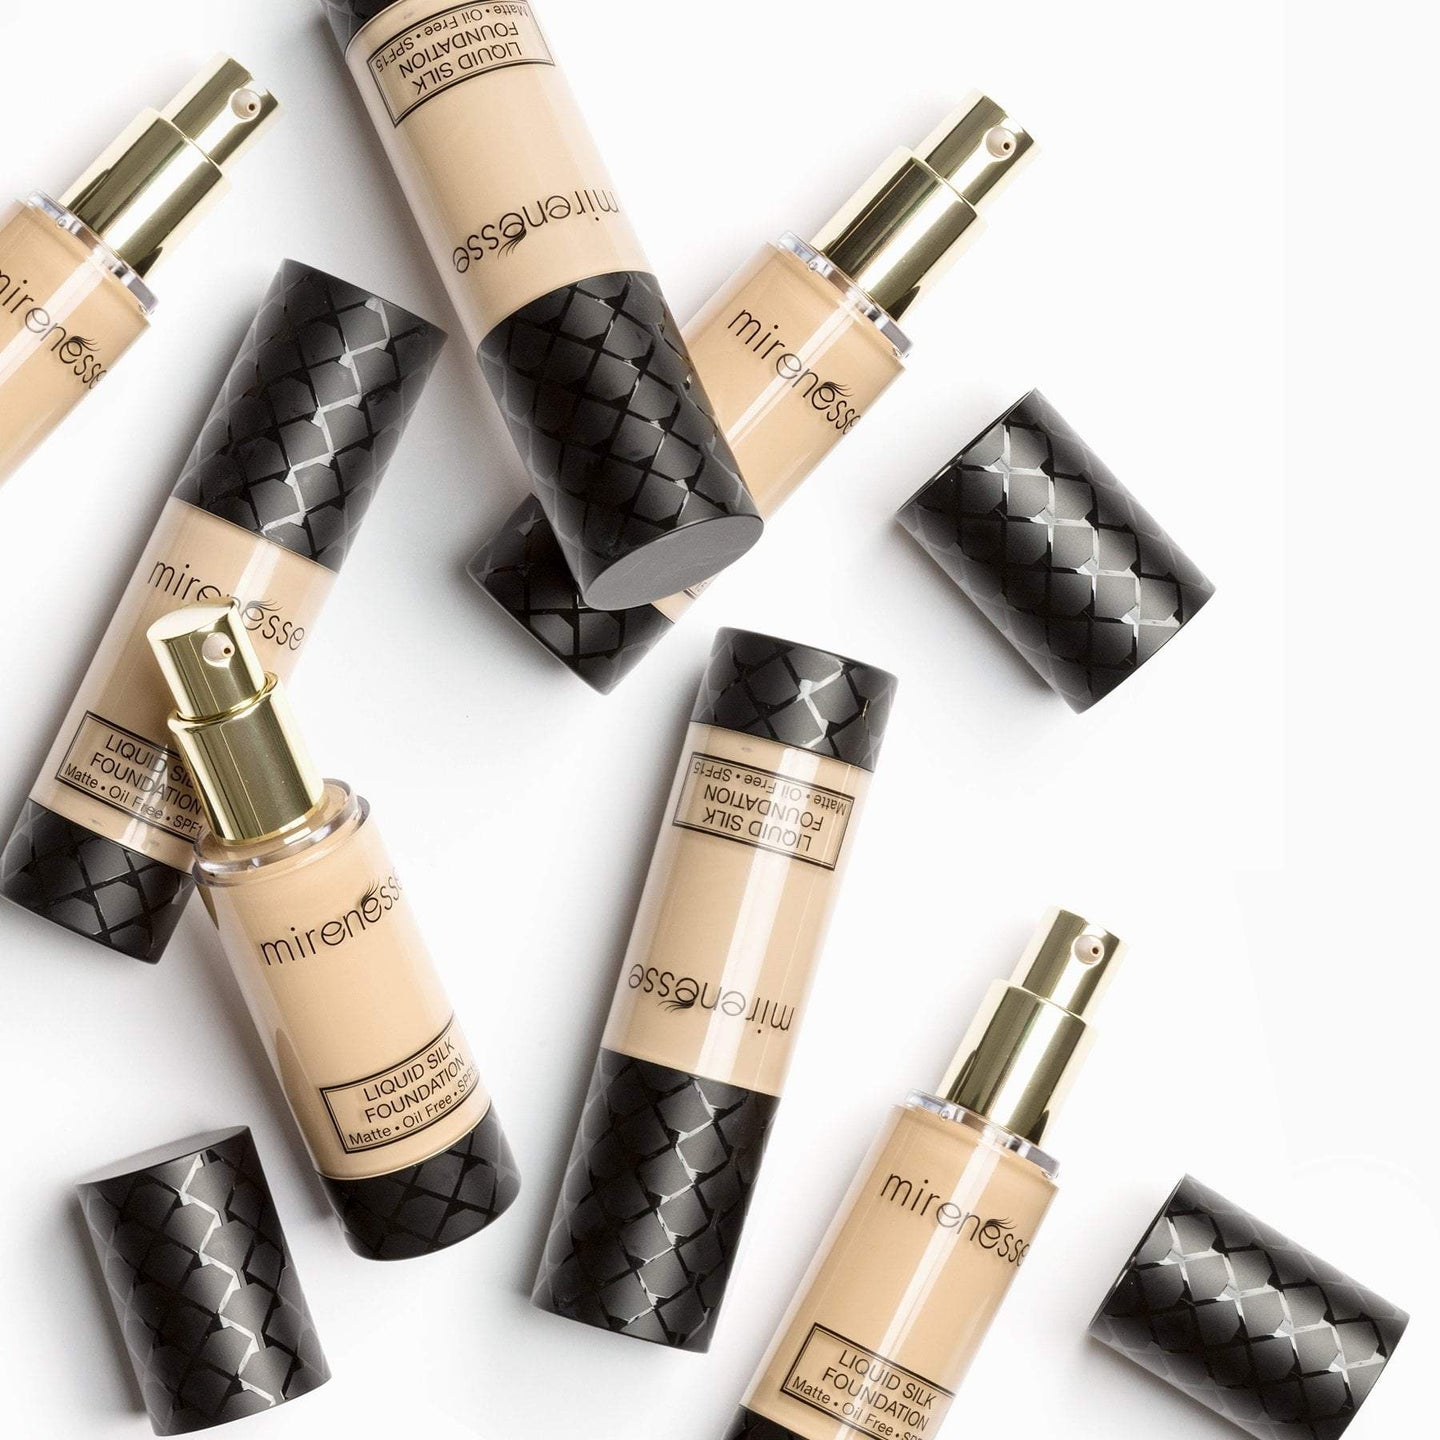 Shop Vanilla Liquid Silk Oil Free Matte Long Wear Makeup Foundation by Mirenesse - Let's make it a trend #explorebeautiful face foundations